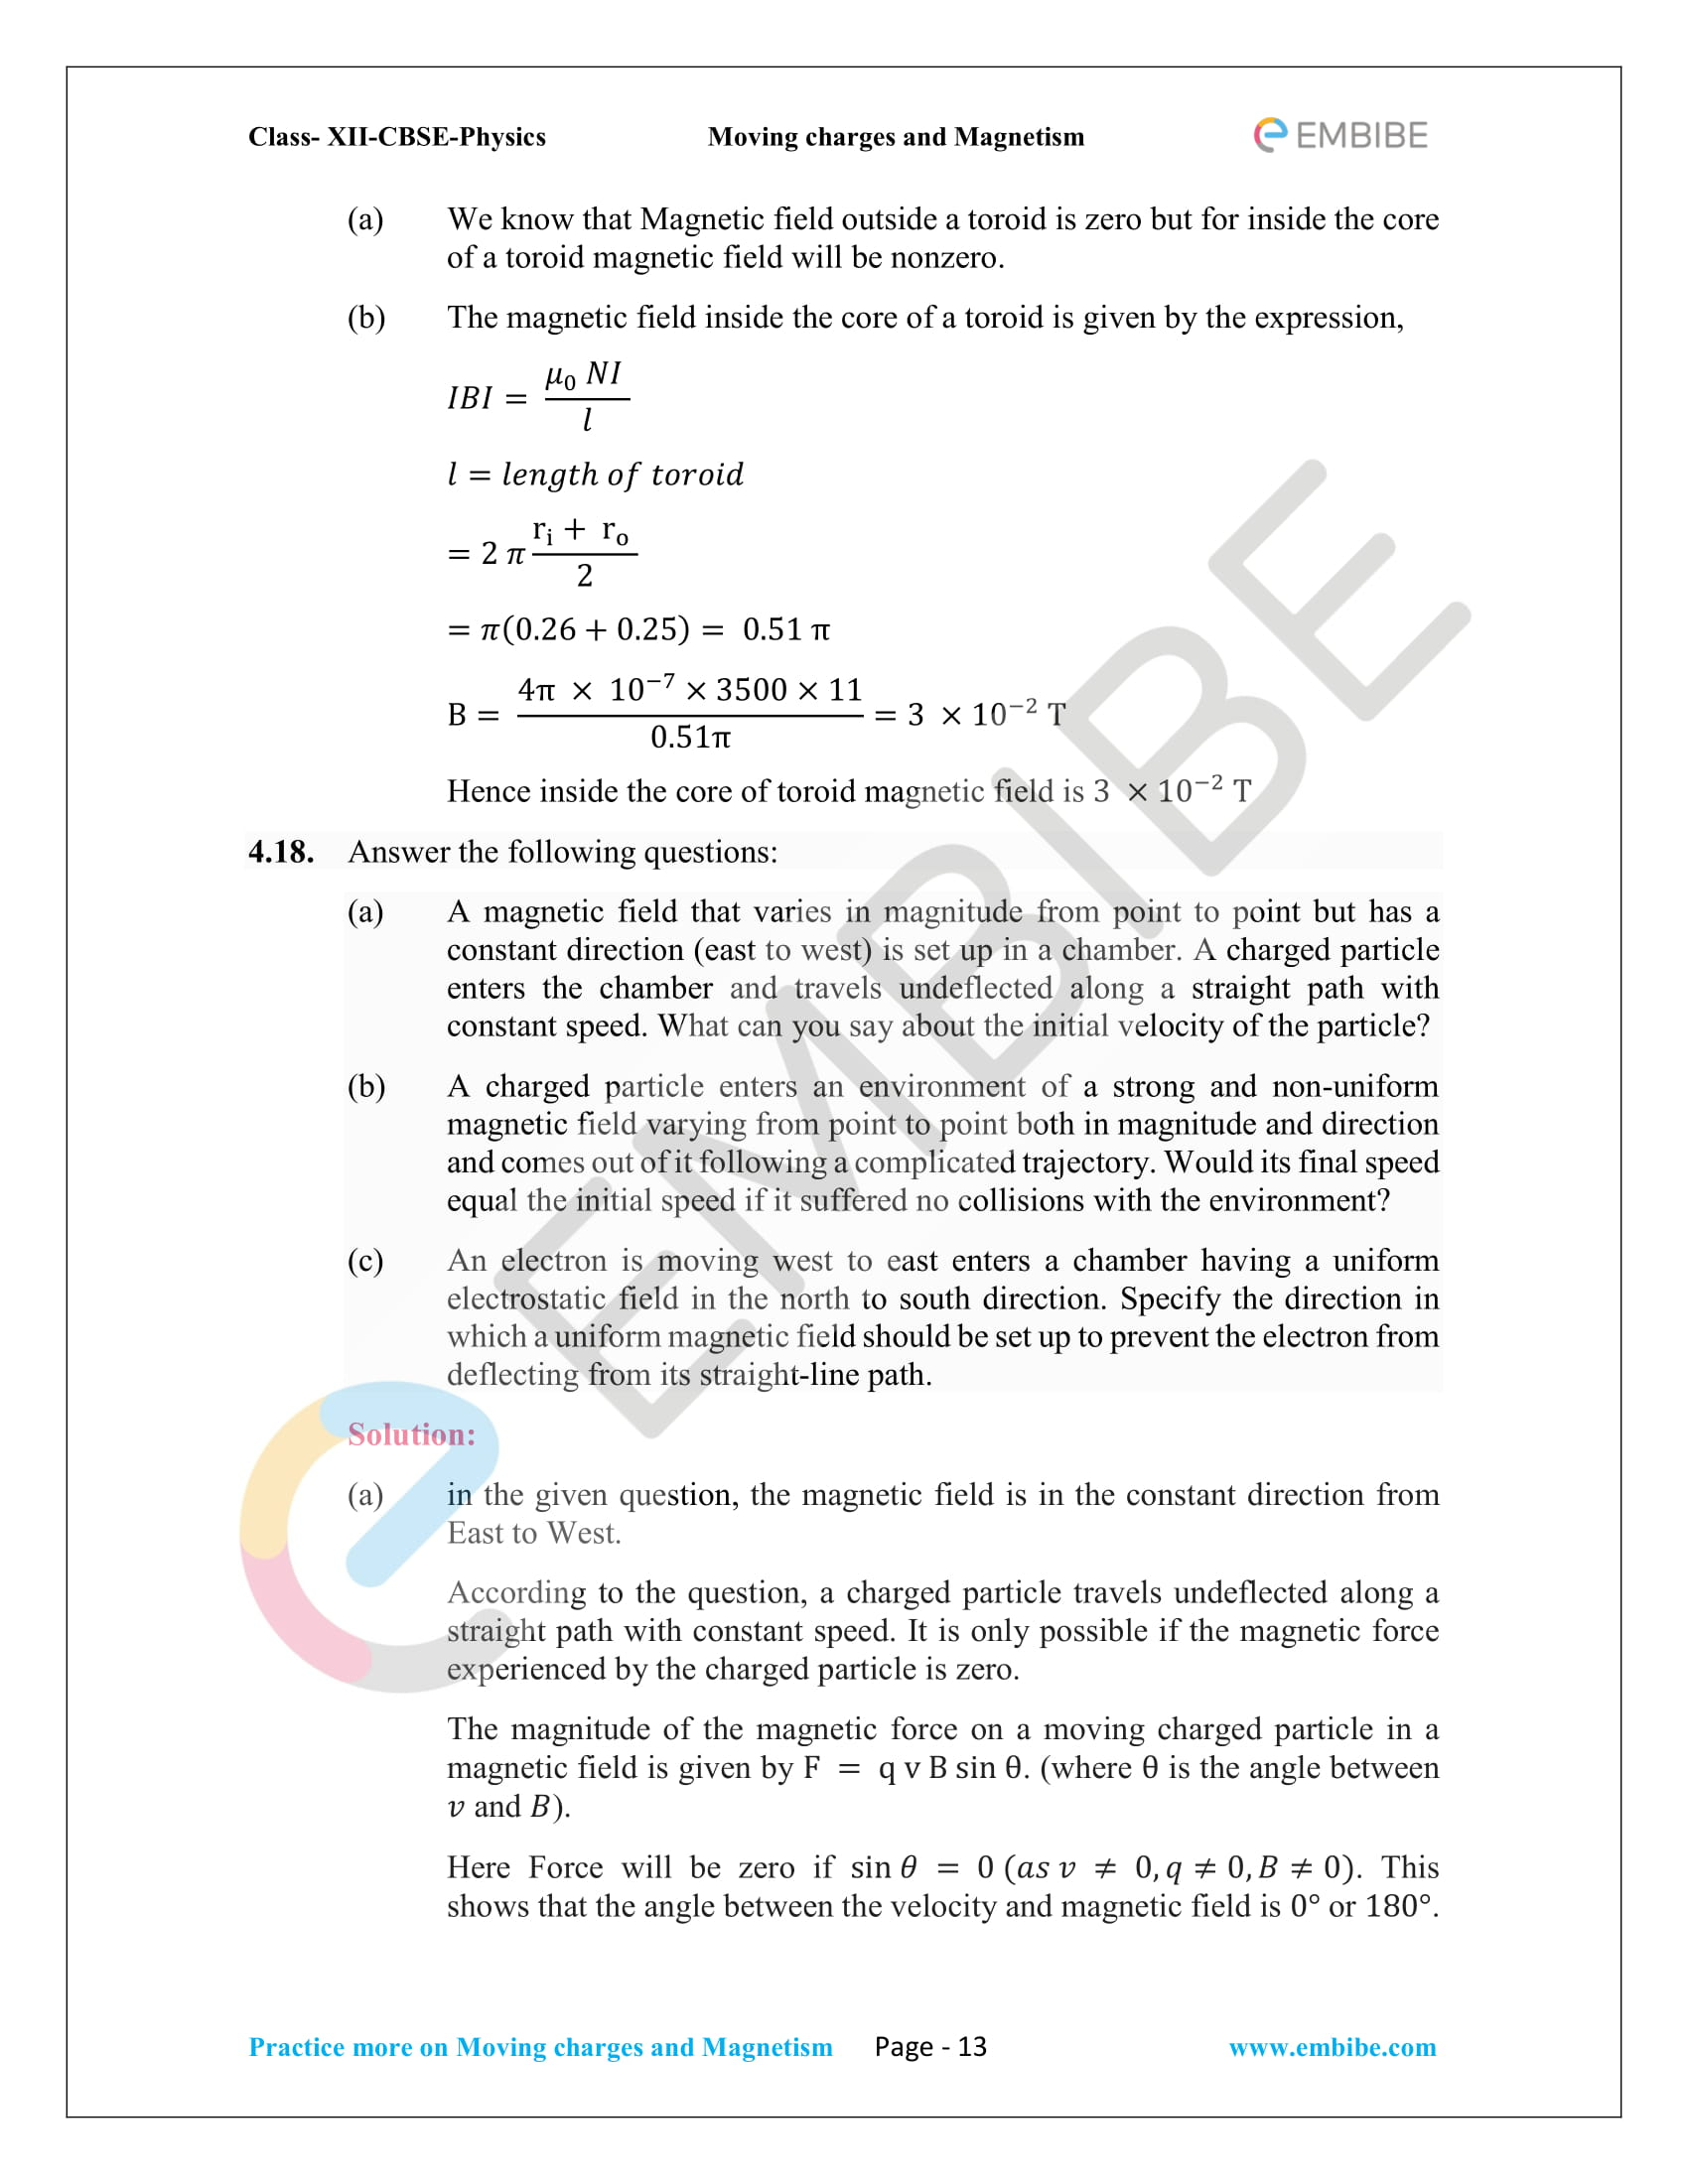 NCERT_Grade 12_Physics_Ch_04_Moving Charges and Magnetism-13